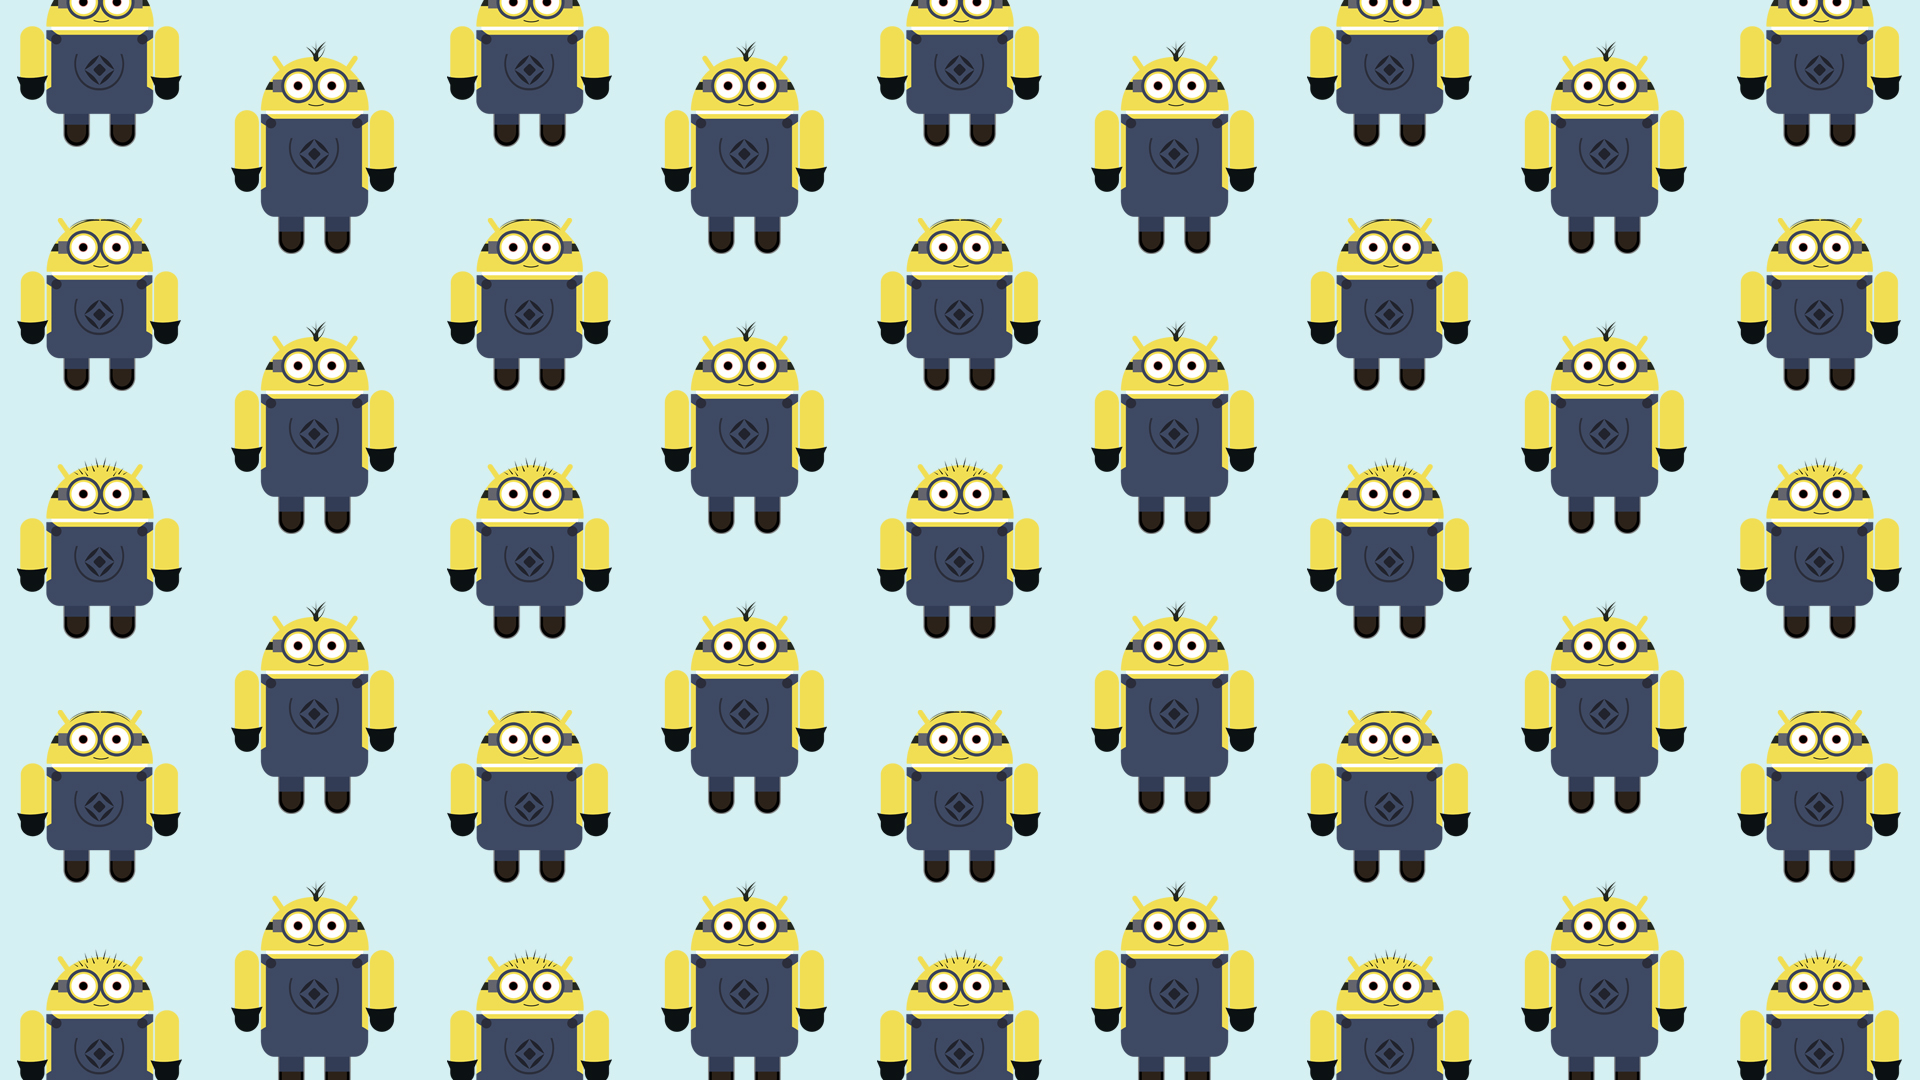 Funny-minions-mobile-android-hd-×-Minions-wallpaper-wpc9005393